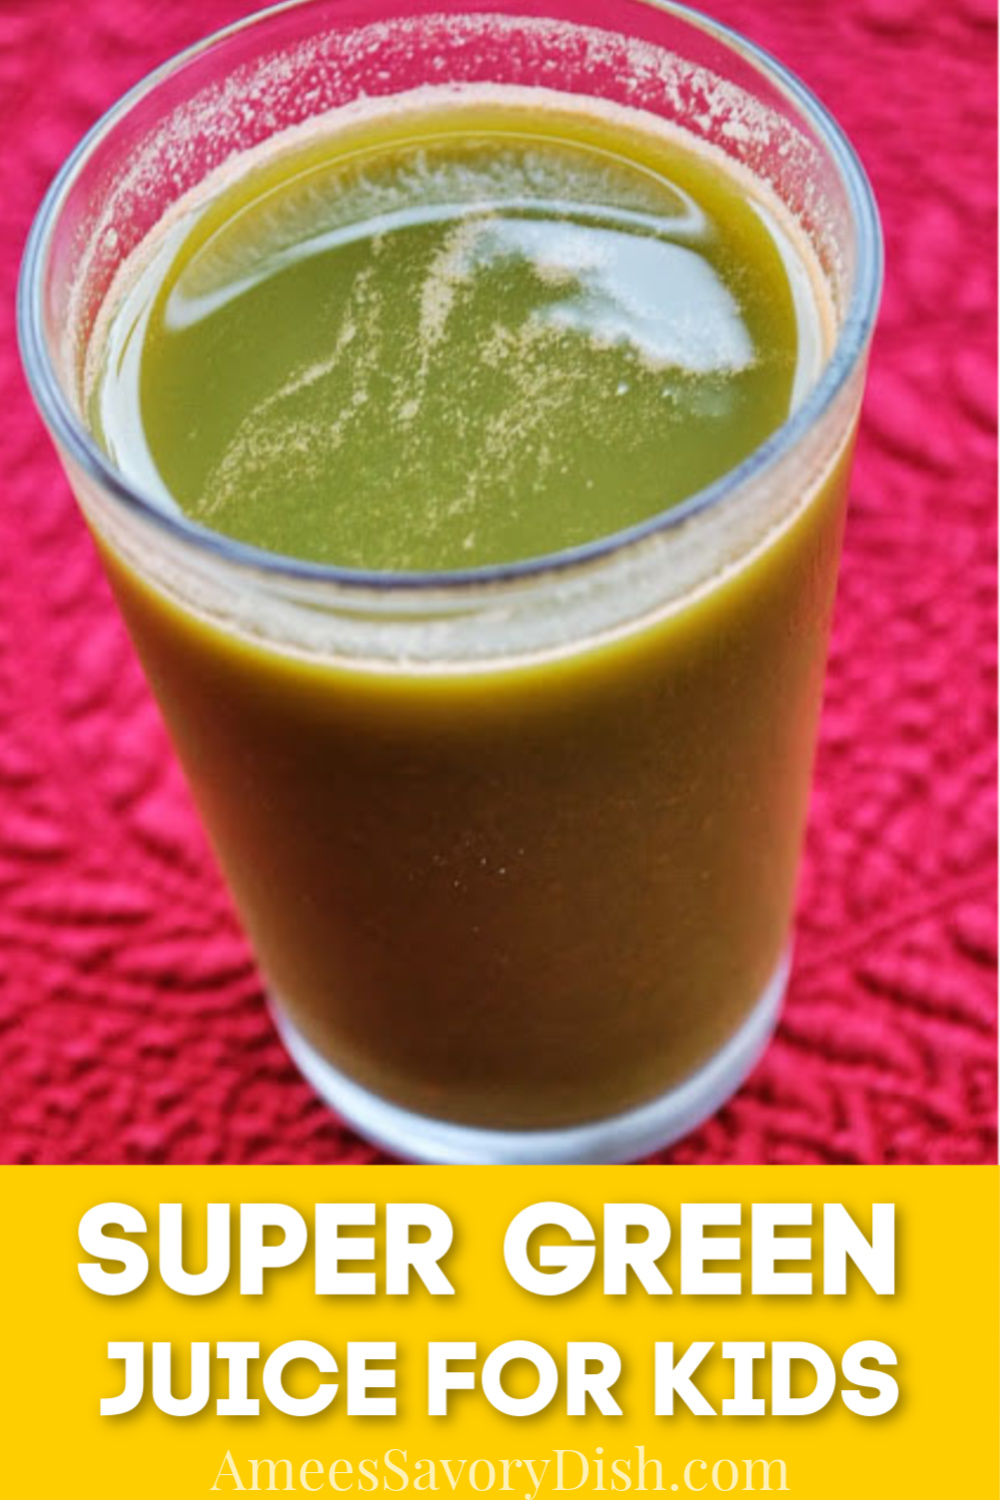 Super green juice is an all-natural smoothie for kids. This easy smoothie recipe is made with fresh fruits and vegetables, with no added sugar. #greenjuice #greendrinks #juicingrecipe via @Ameecooks